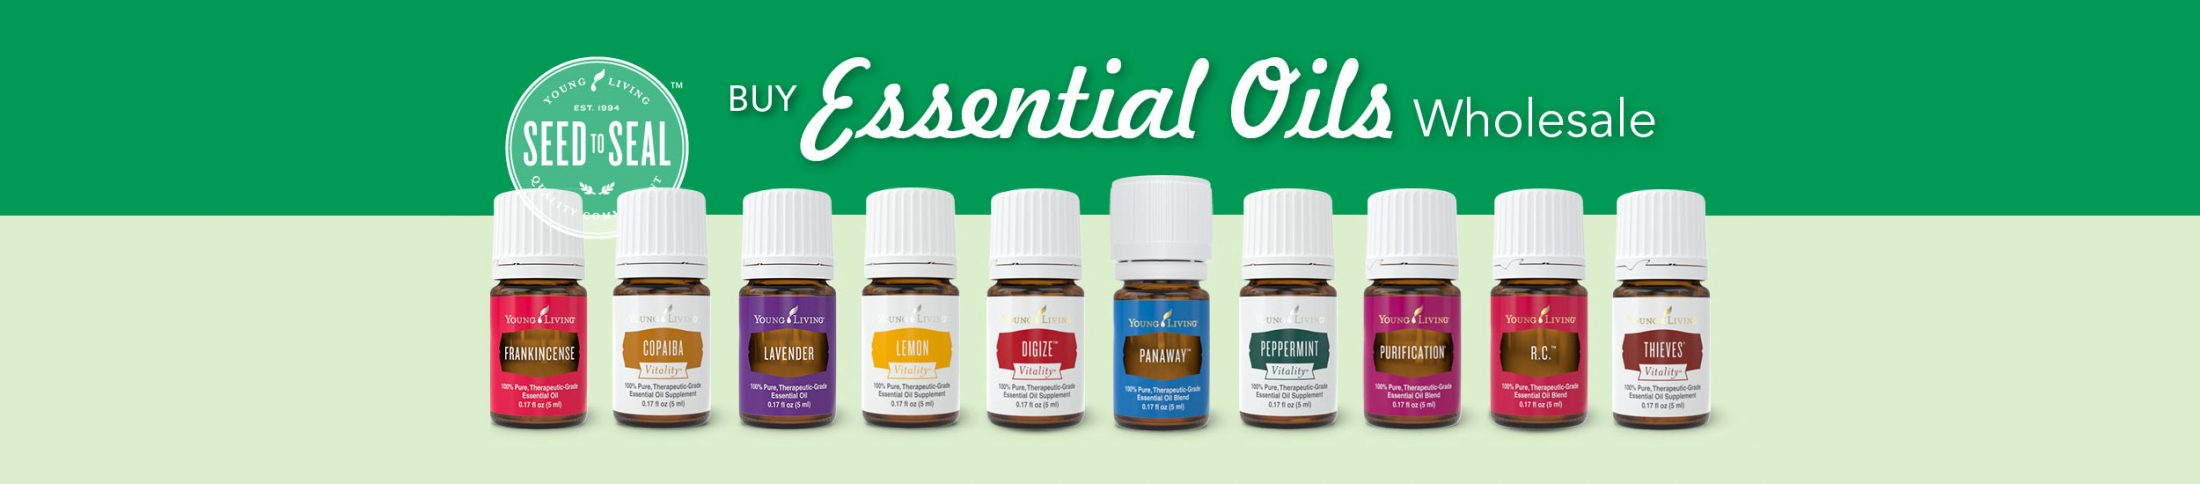 Purchase Essential Oils